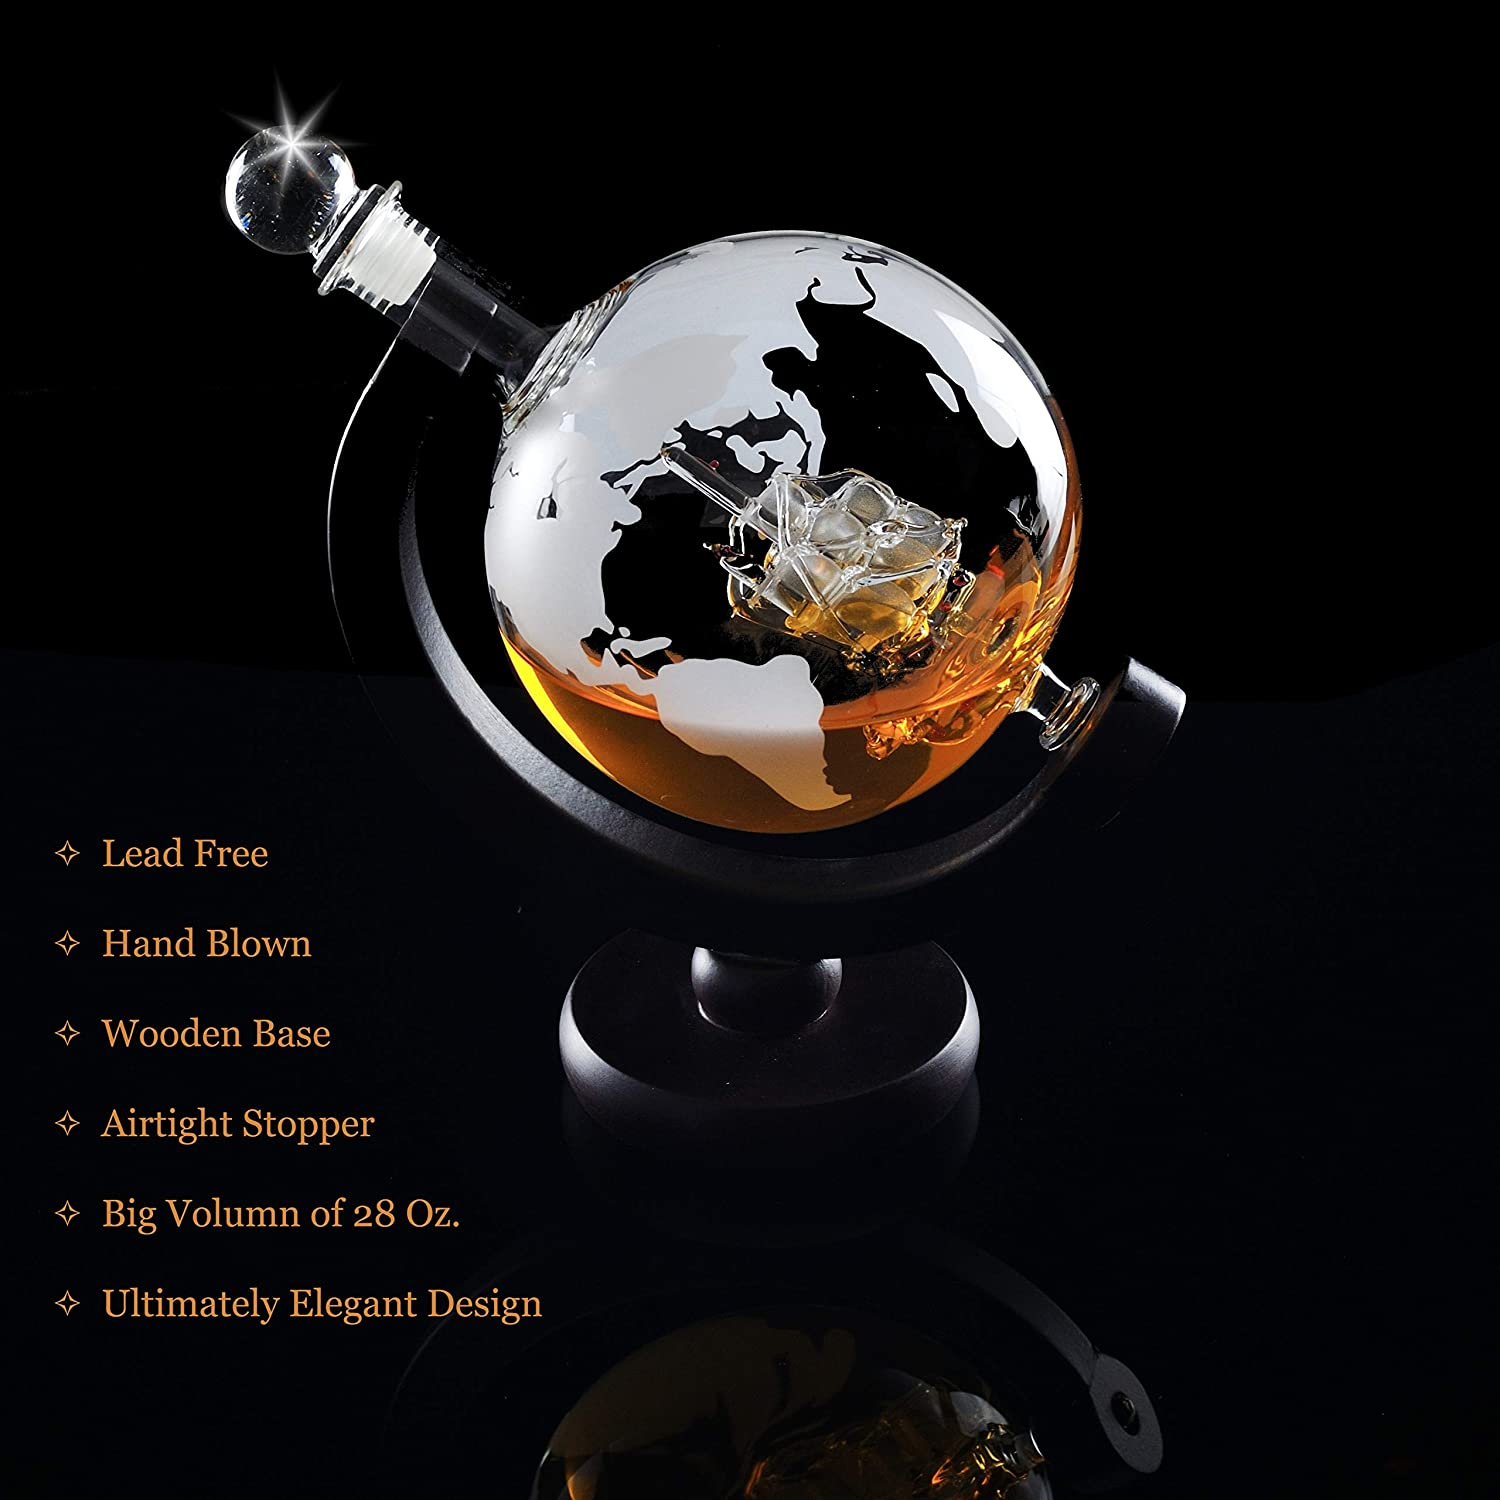 Creative Globe Decanter Set with Lead-free Carafe 2